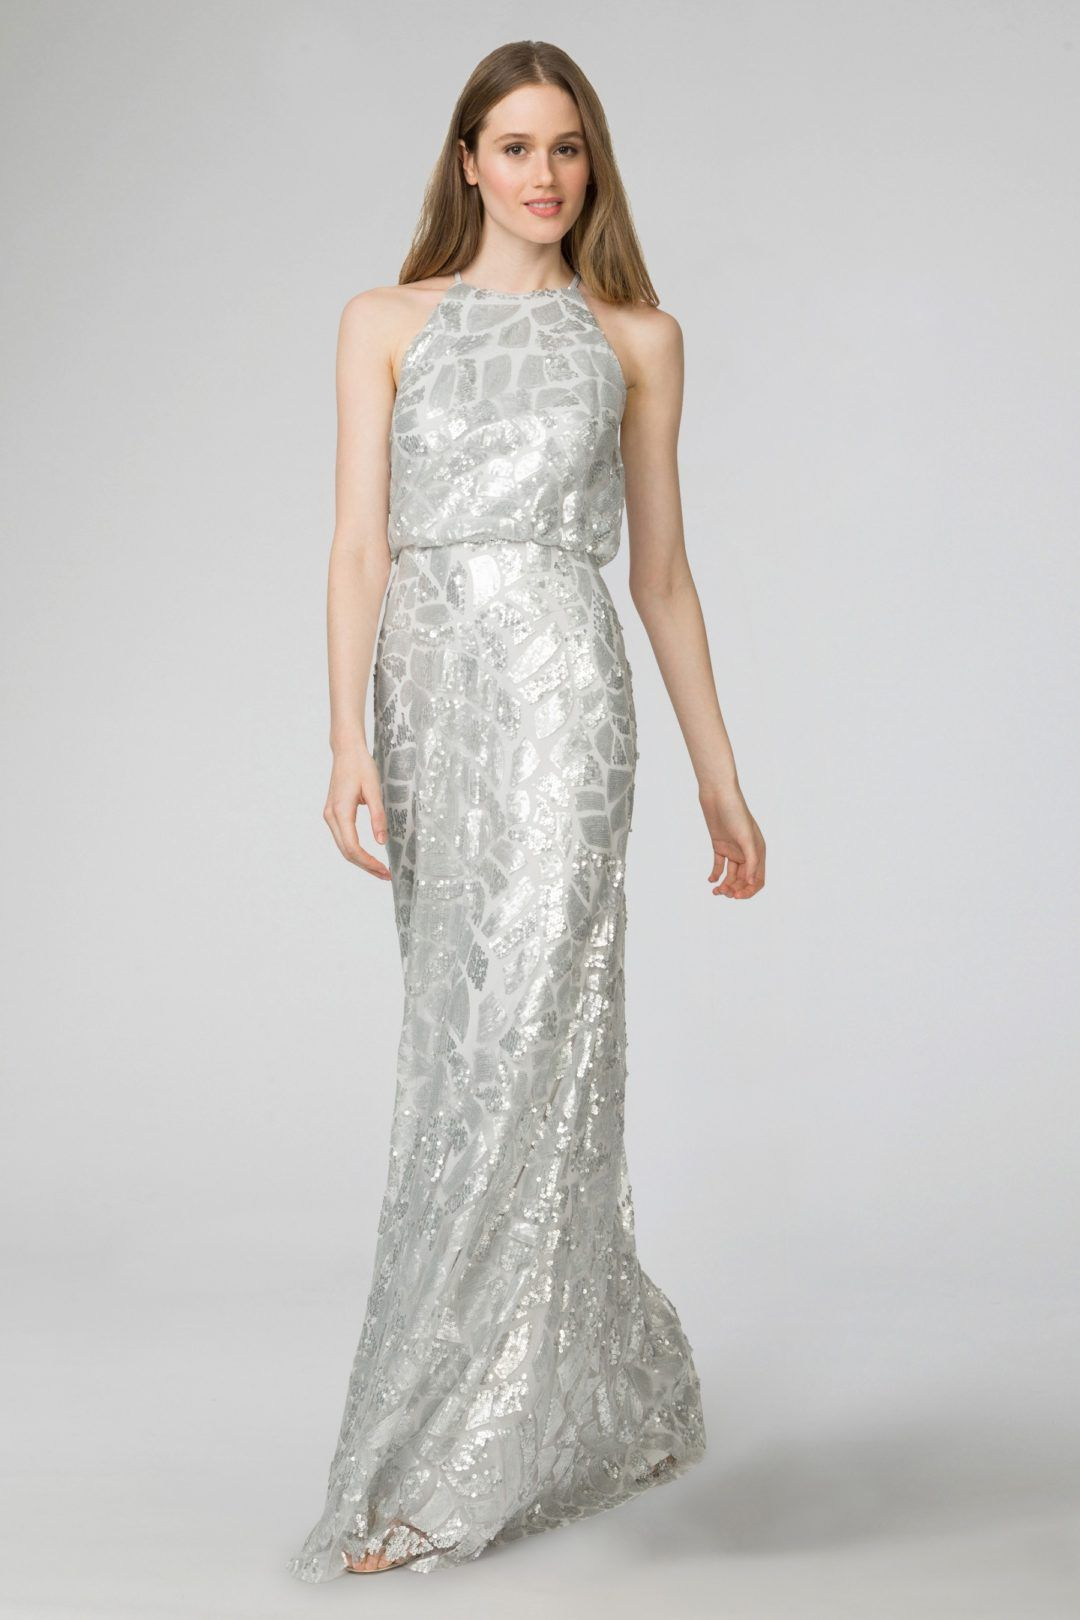 Sparkly Long Gown With Silver Beading